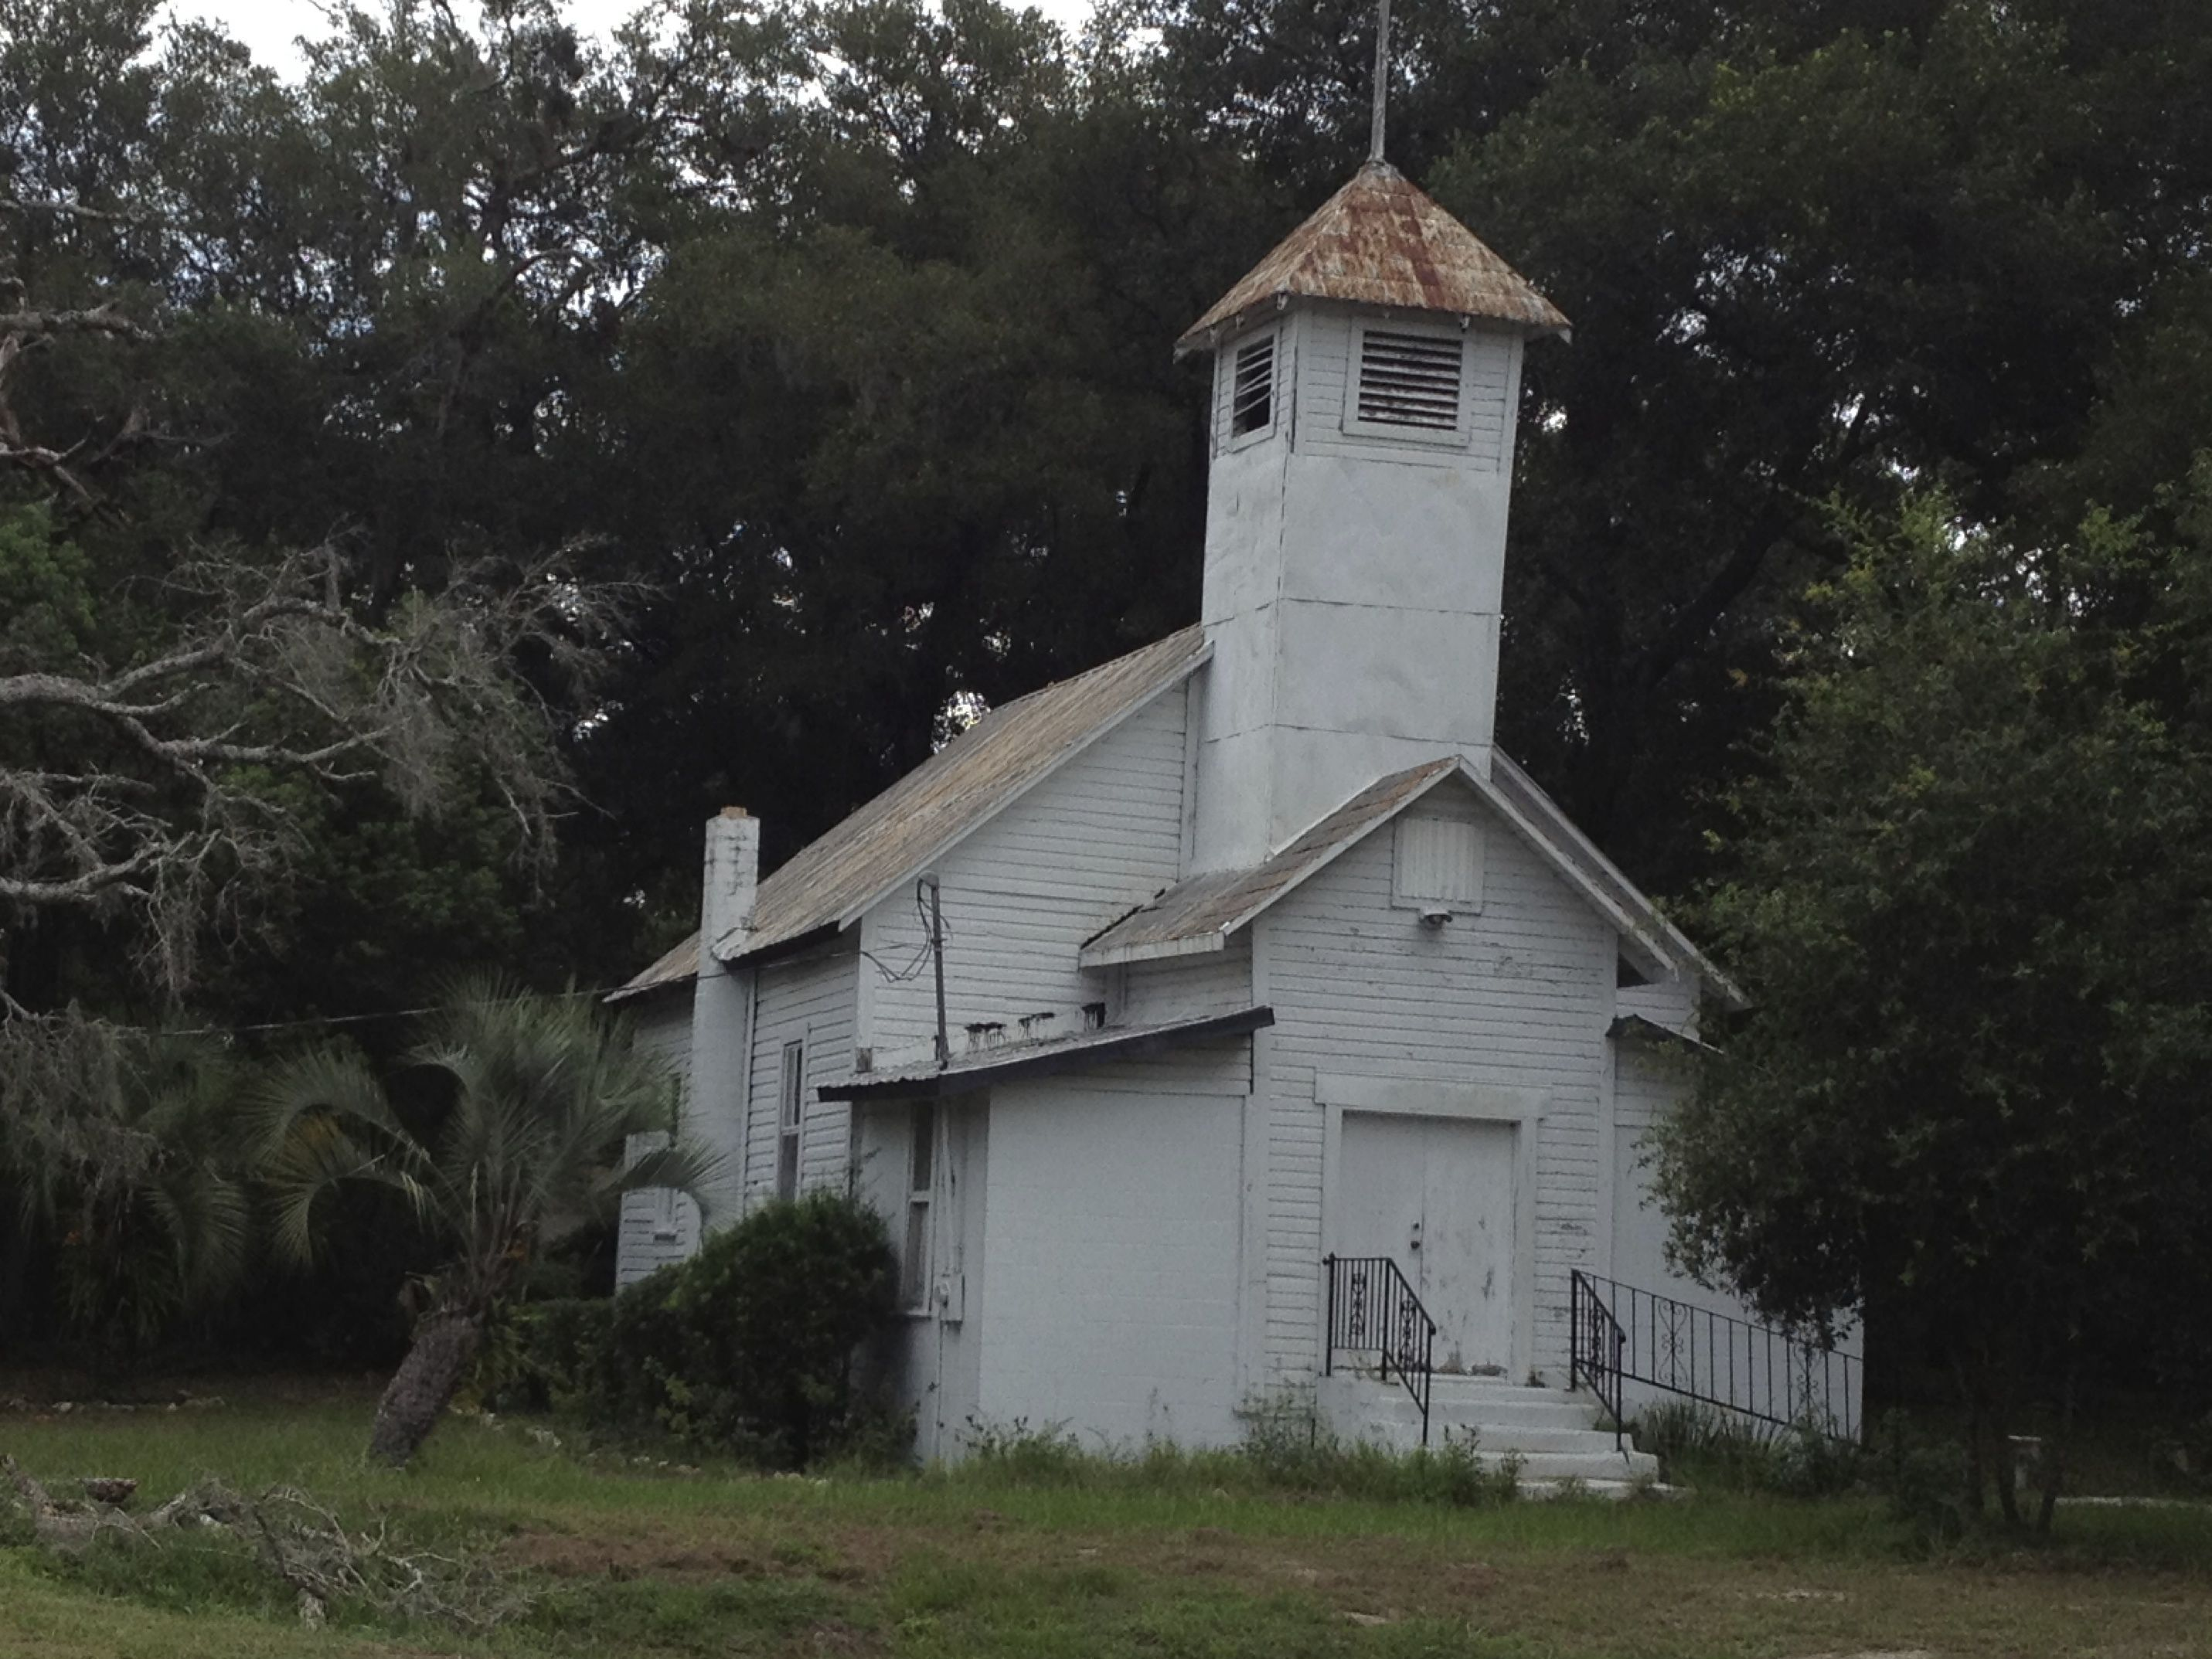 Old church that must be haunted in mt dora fl the haunted pinterest churches - Homes in old churches ...